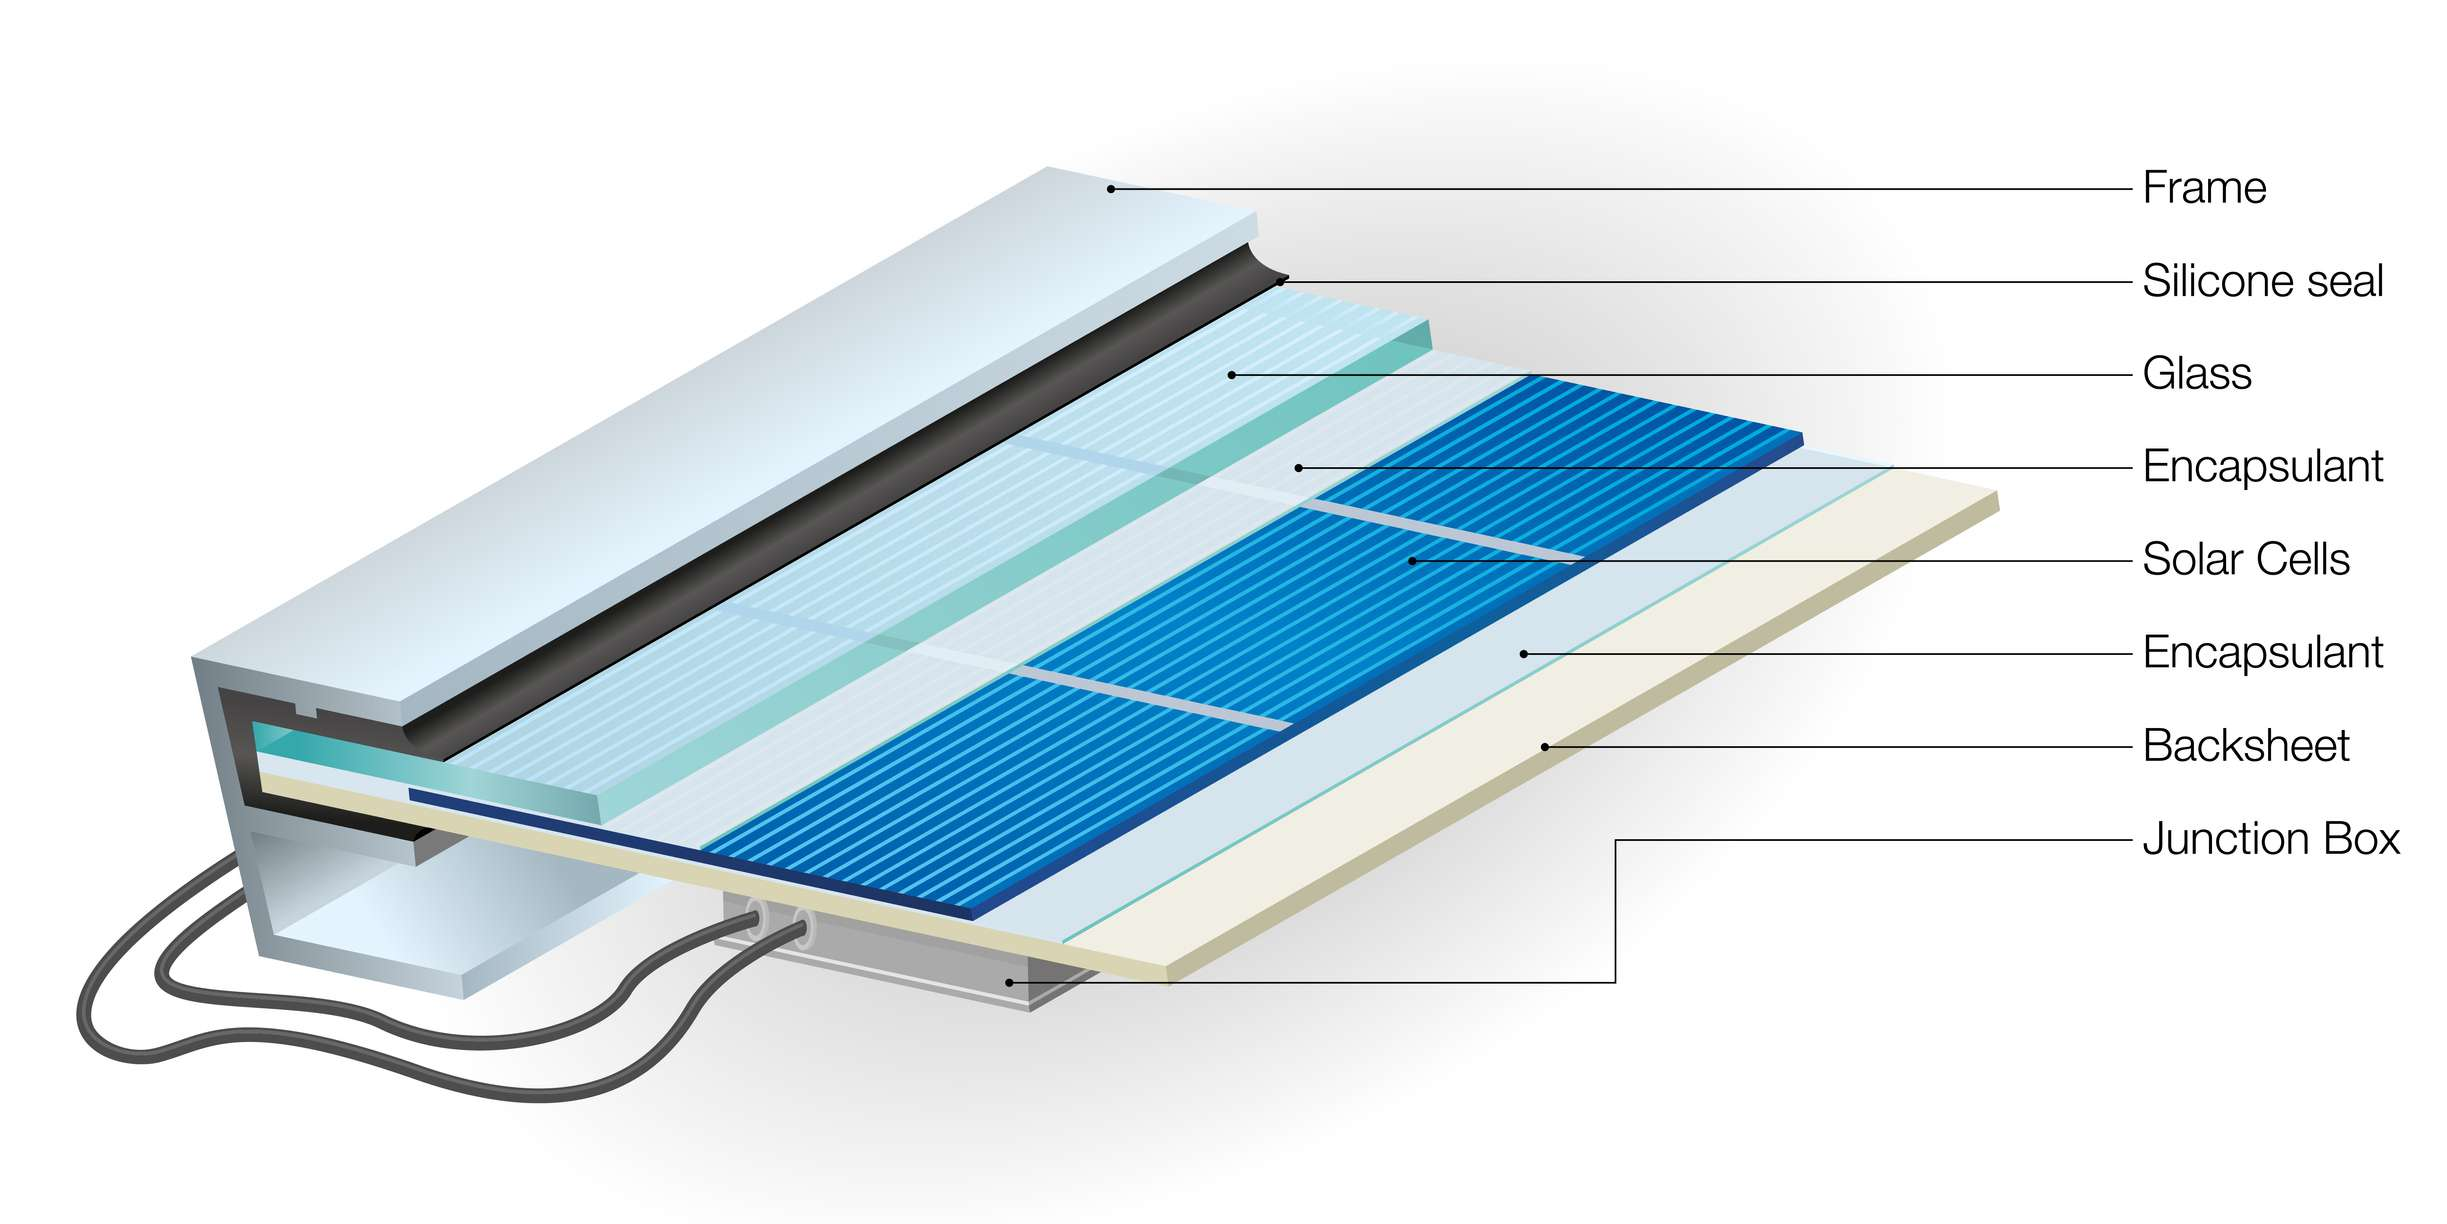 The parts of a solar panel